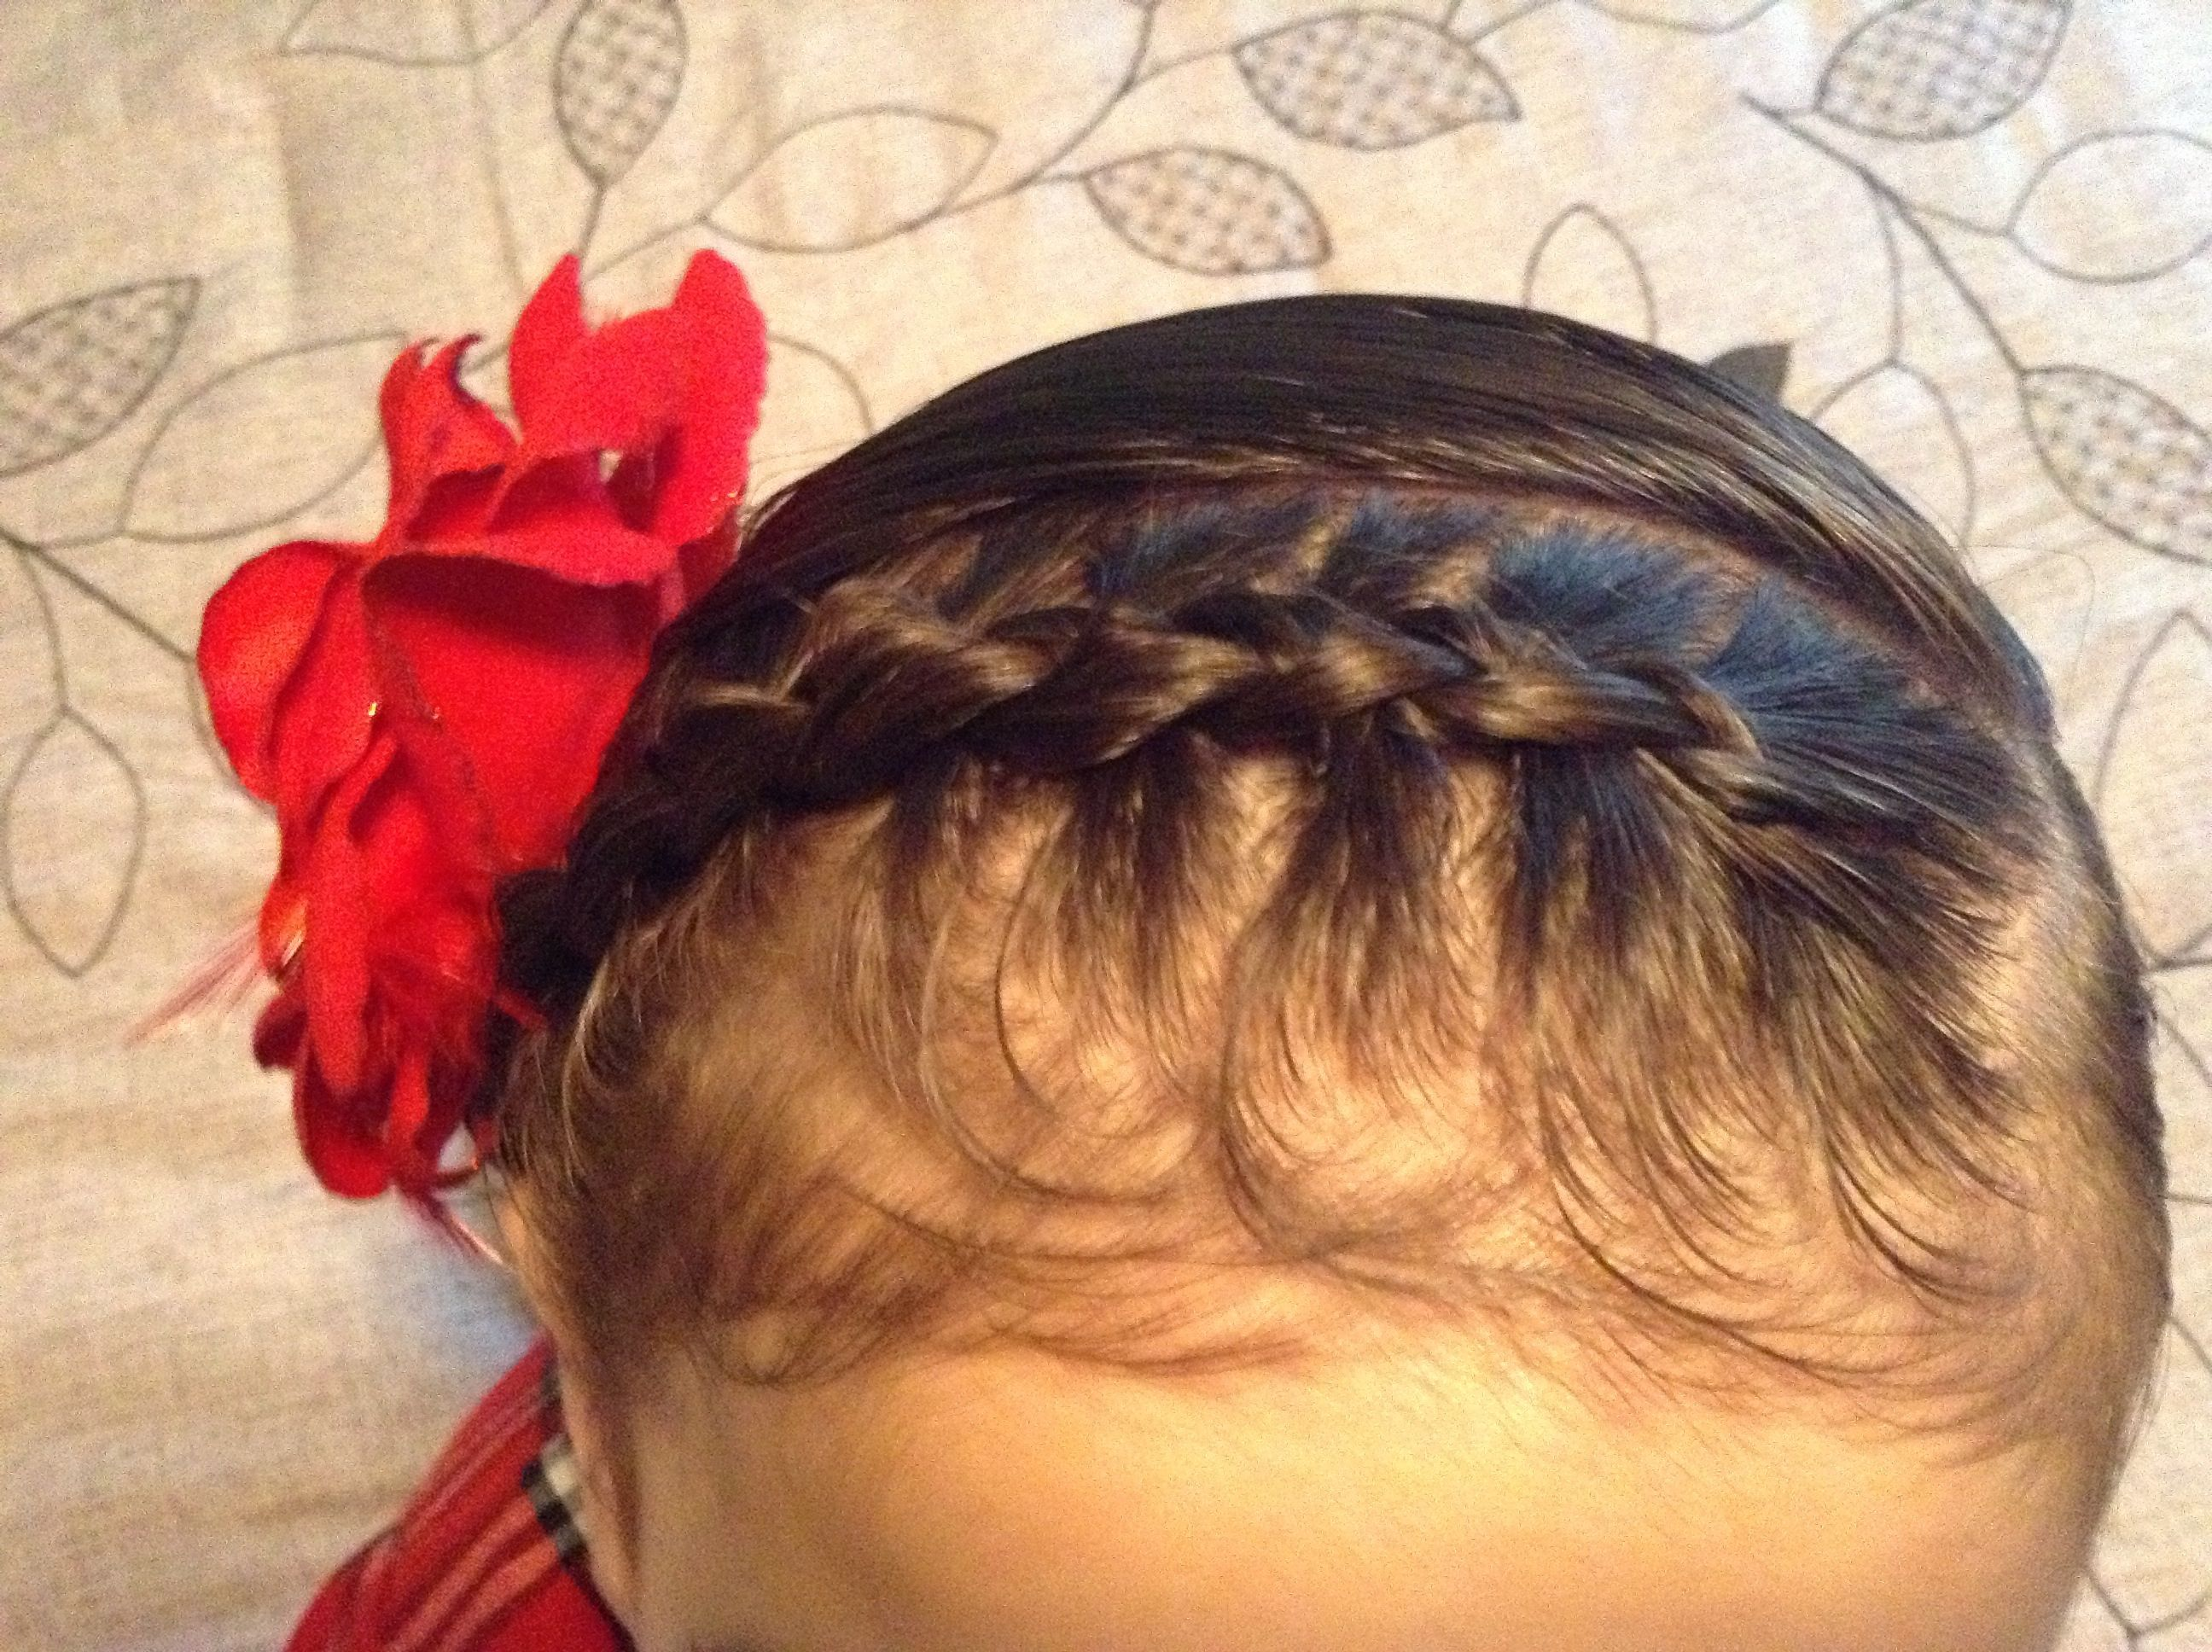 Hairstyles For Toddlers Brilliant Cute Hairstyles For Toddlers  Dresses&bows&things Pinterest